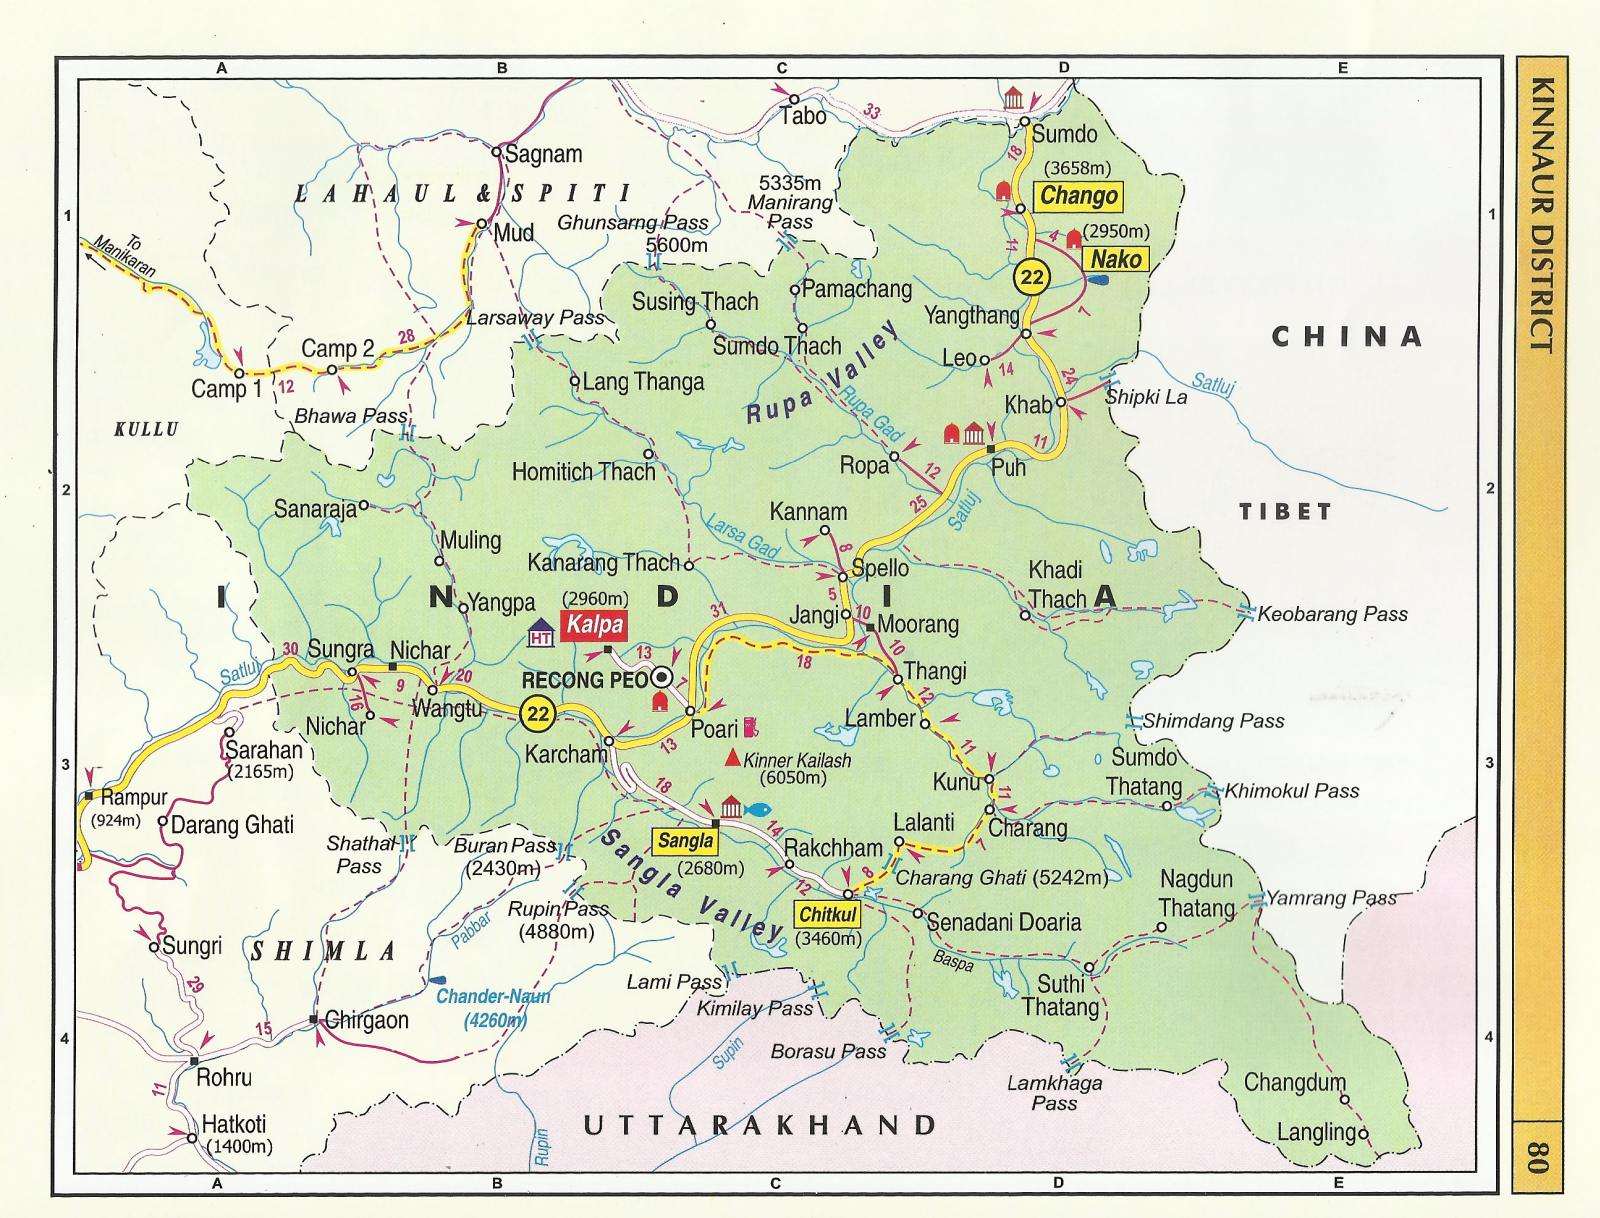 Road Map Of Himachal Pradesh Himachal Pradesh Tourist Maps   Himachal Pradesh Travel Guide